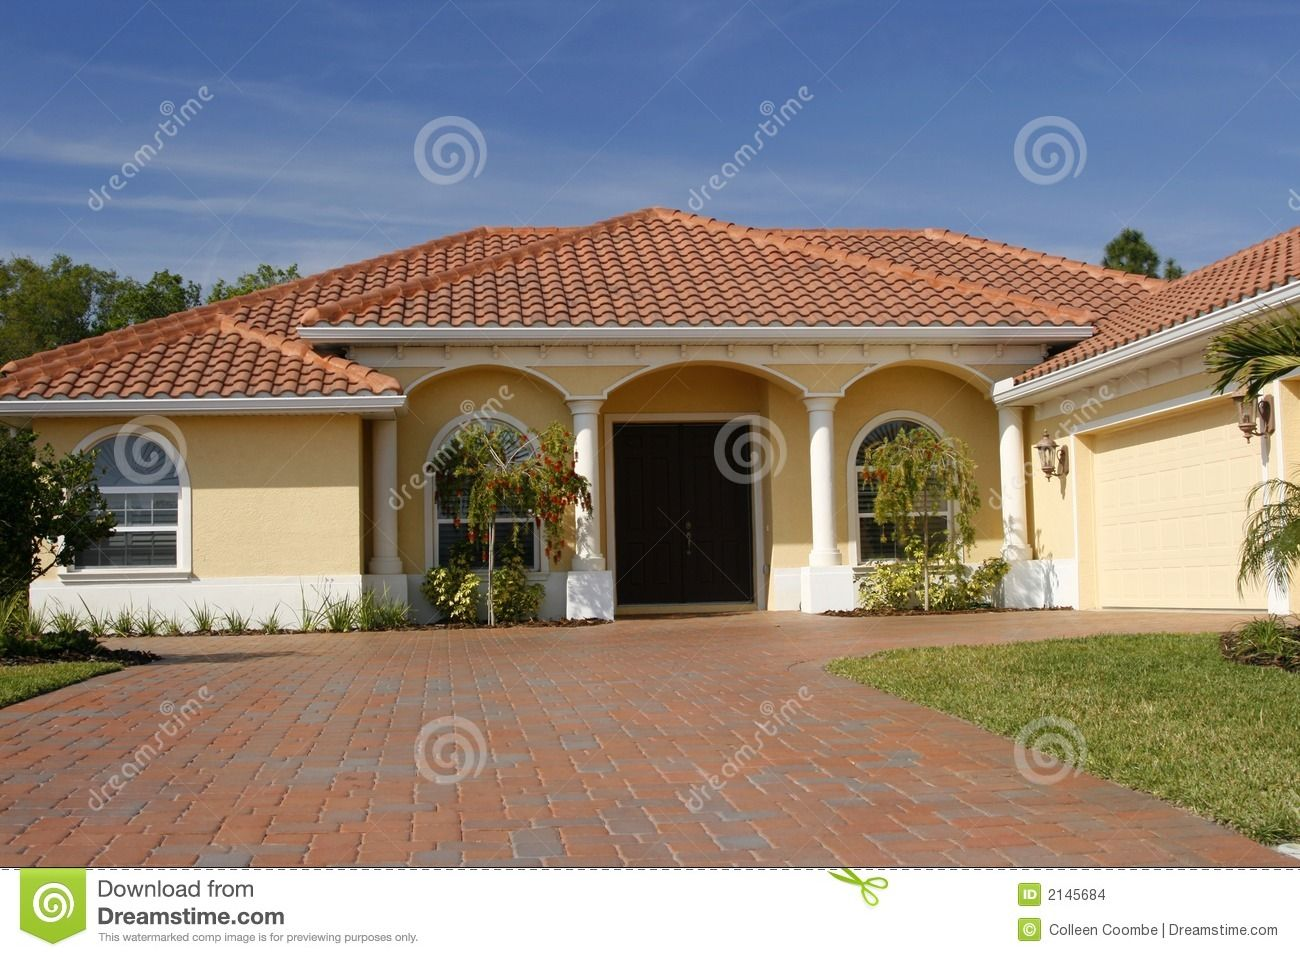 Best Yellow House With Red Roof Neat Yellow Home With White Columns Red Tile Roof And Wide Paved 400 x 300